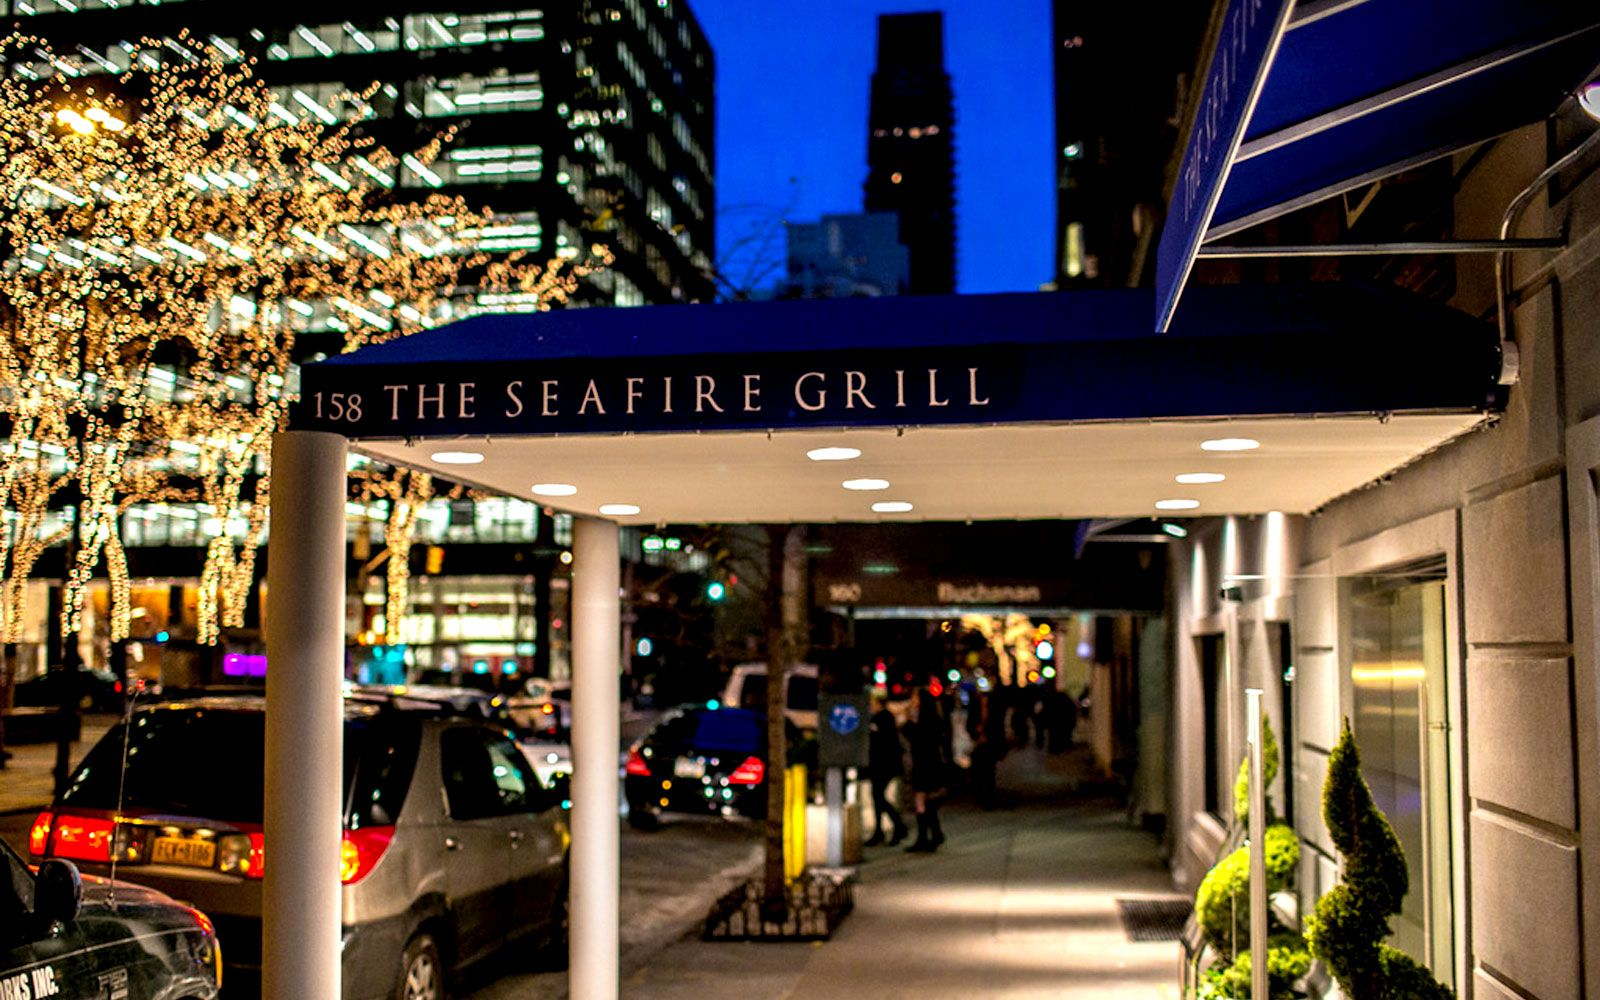 The Sea Fire Grill Seafood Restaurants Nyc Midtown East Side